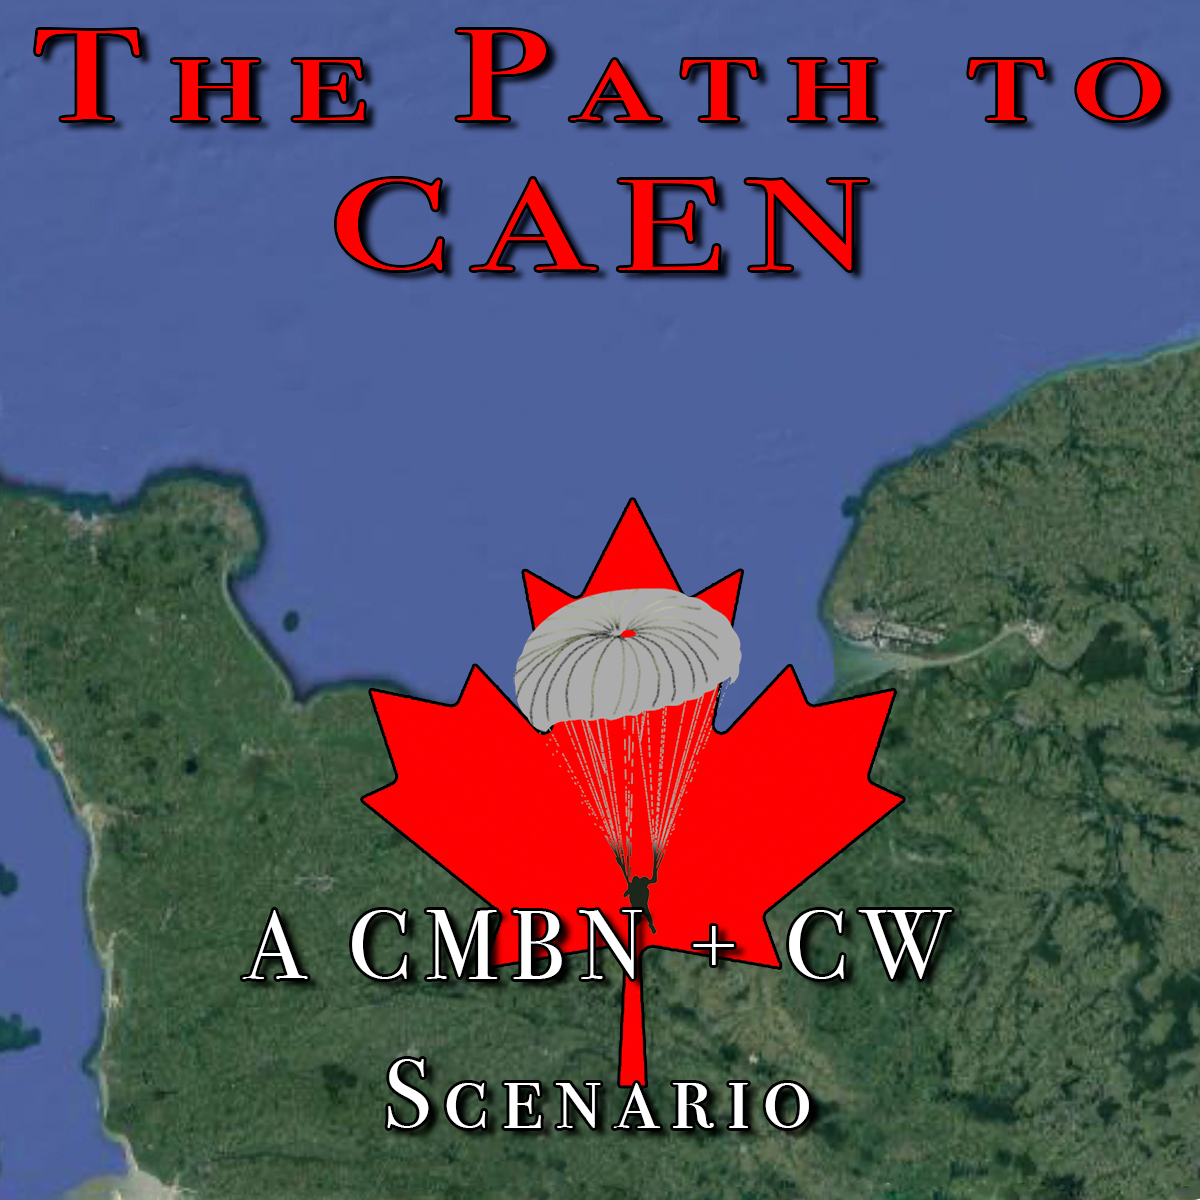 The Path to CAEN